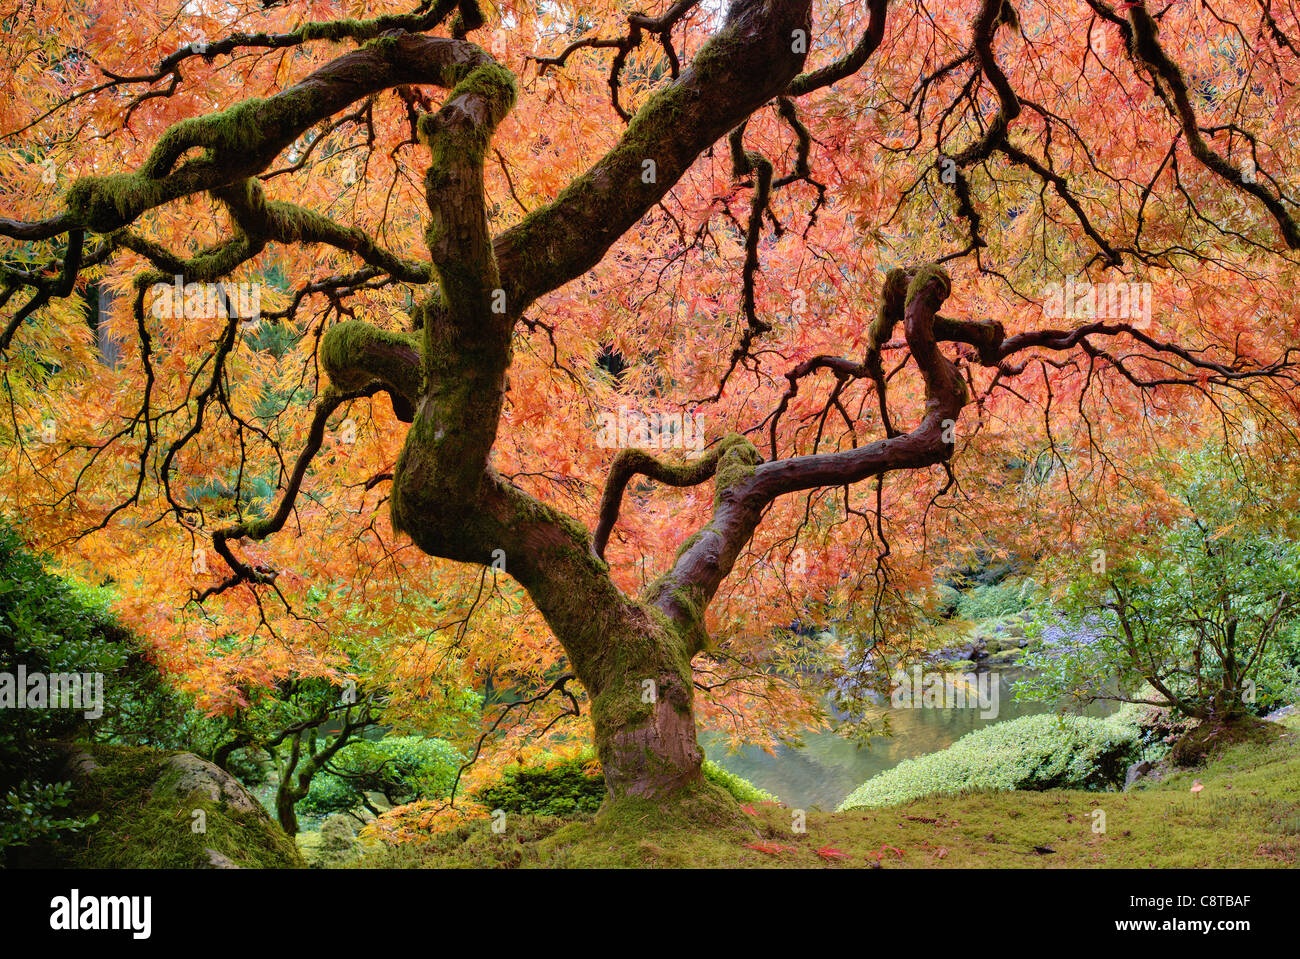 Old Japanese Maple Tree at Japanese Garden in Autumn Stock Photo